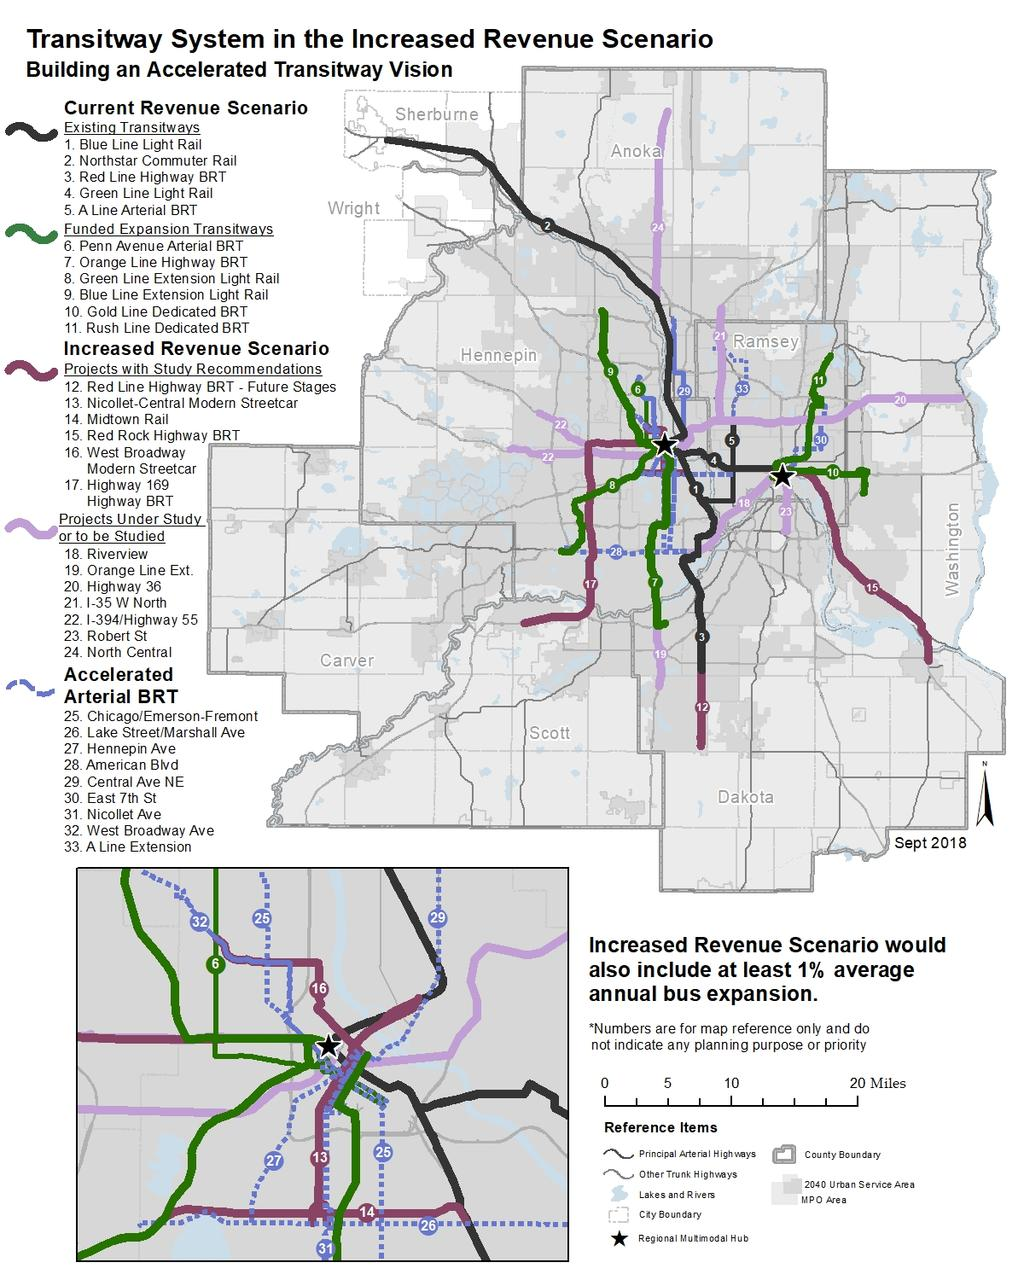 Figure 6-9: Map of Transitway System in an Increased Revenue Scenario Building an Accelerated Transitway Vision